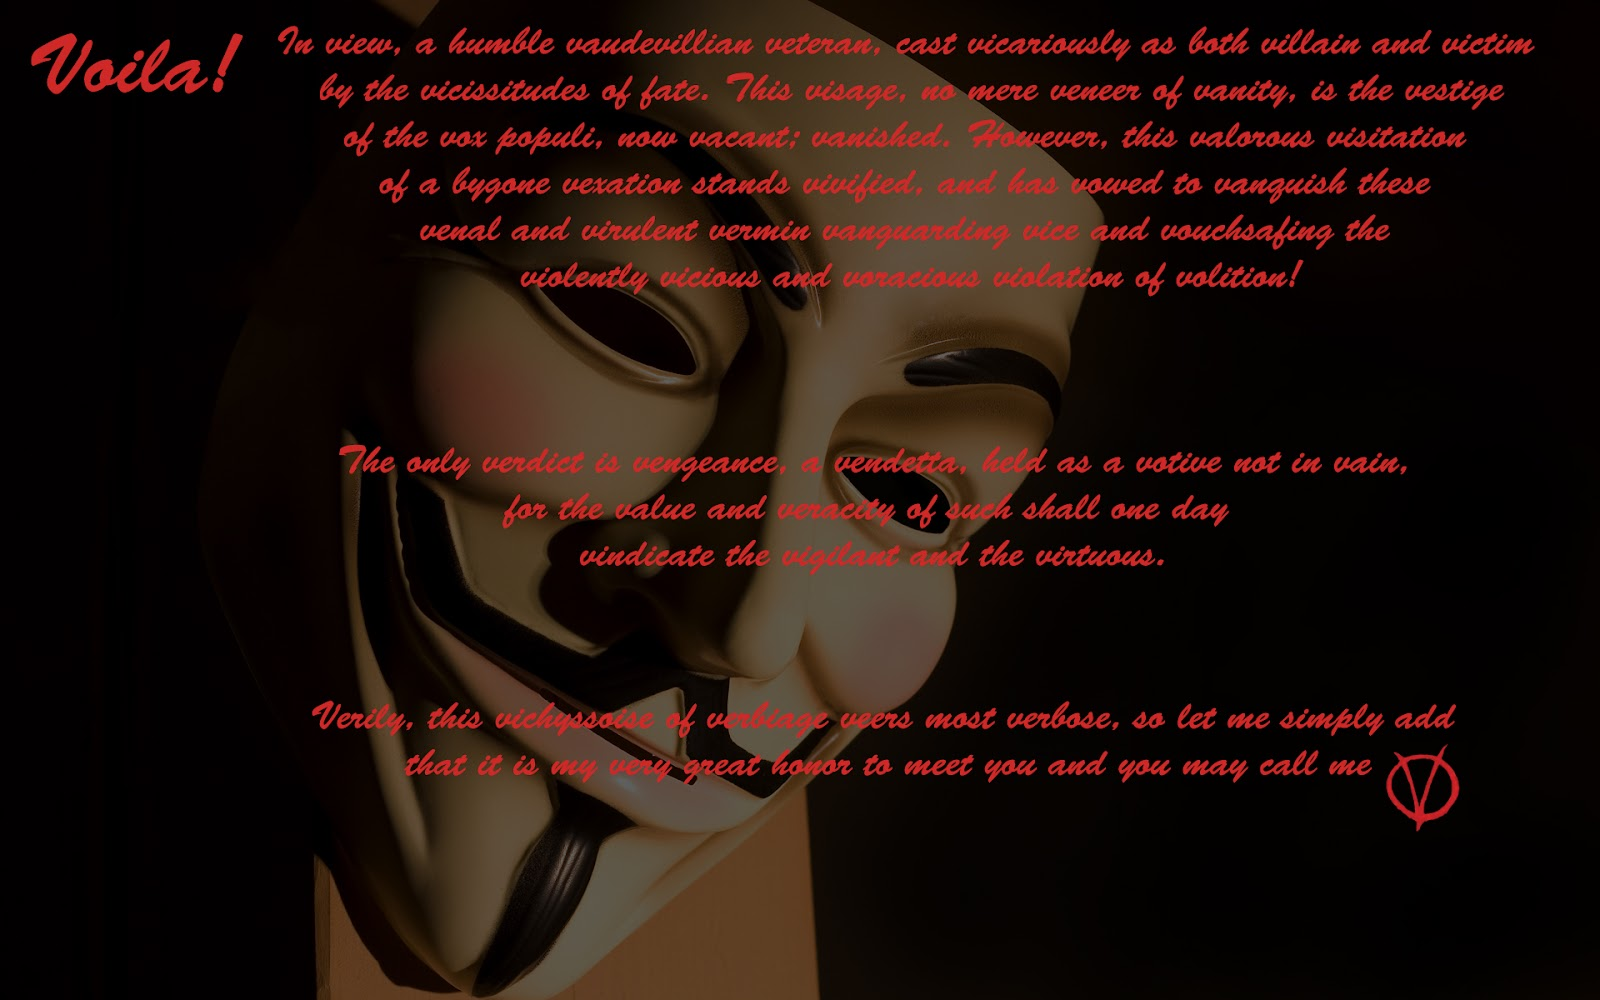 30 WALLPAPER HD ANONYMOUS Iniwallpaperkami